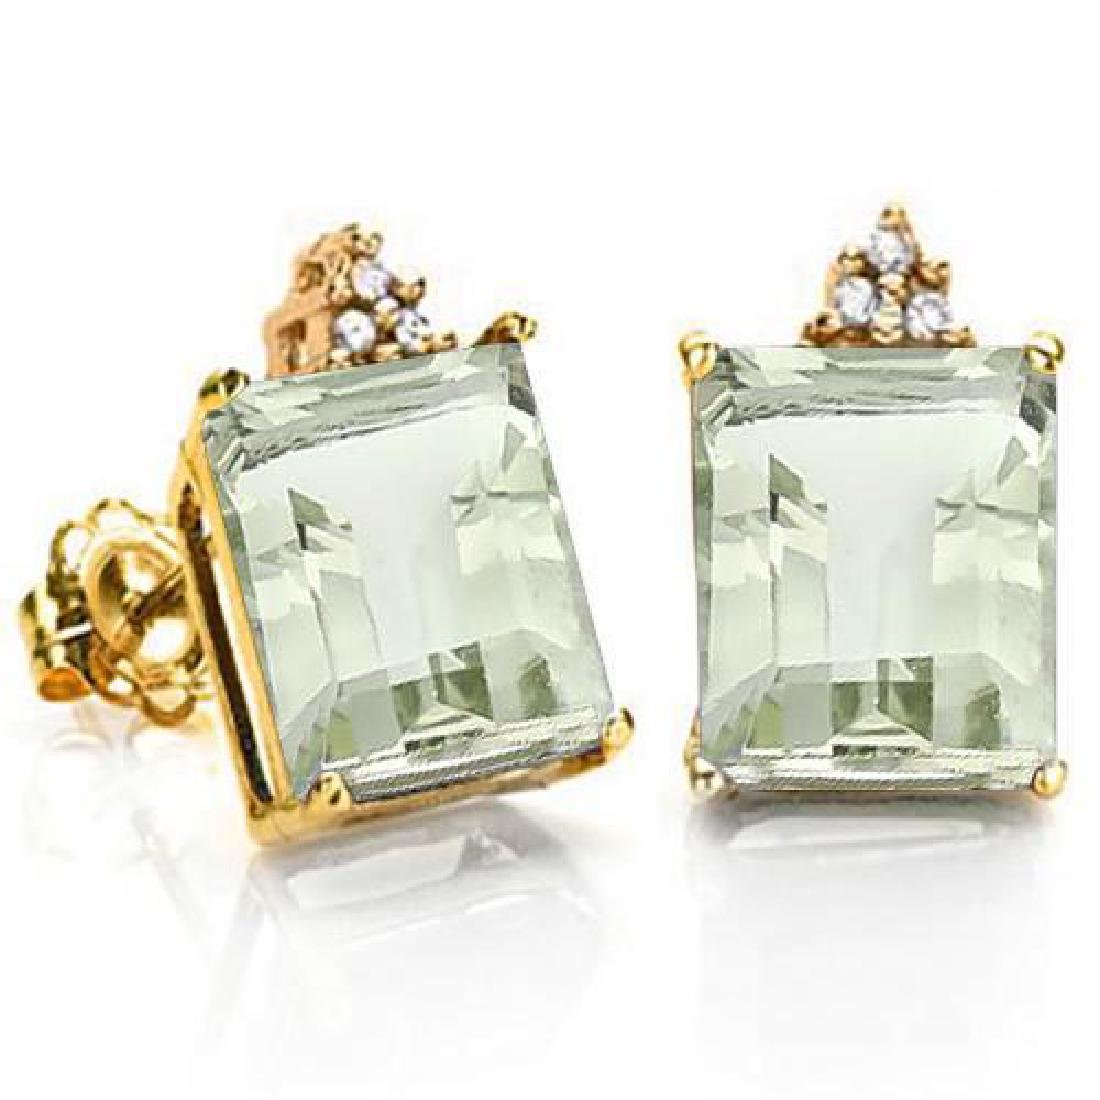 1.92 CARAT GREEN AMETHYST 10K SOLID YELLOW GOLD OCTAGON